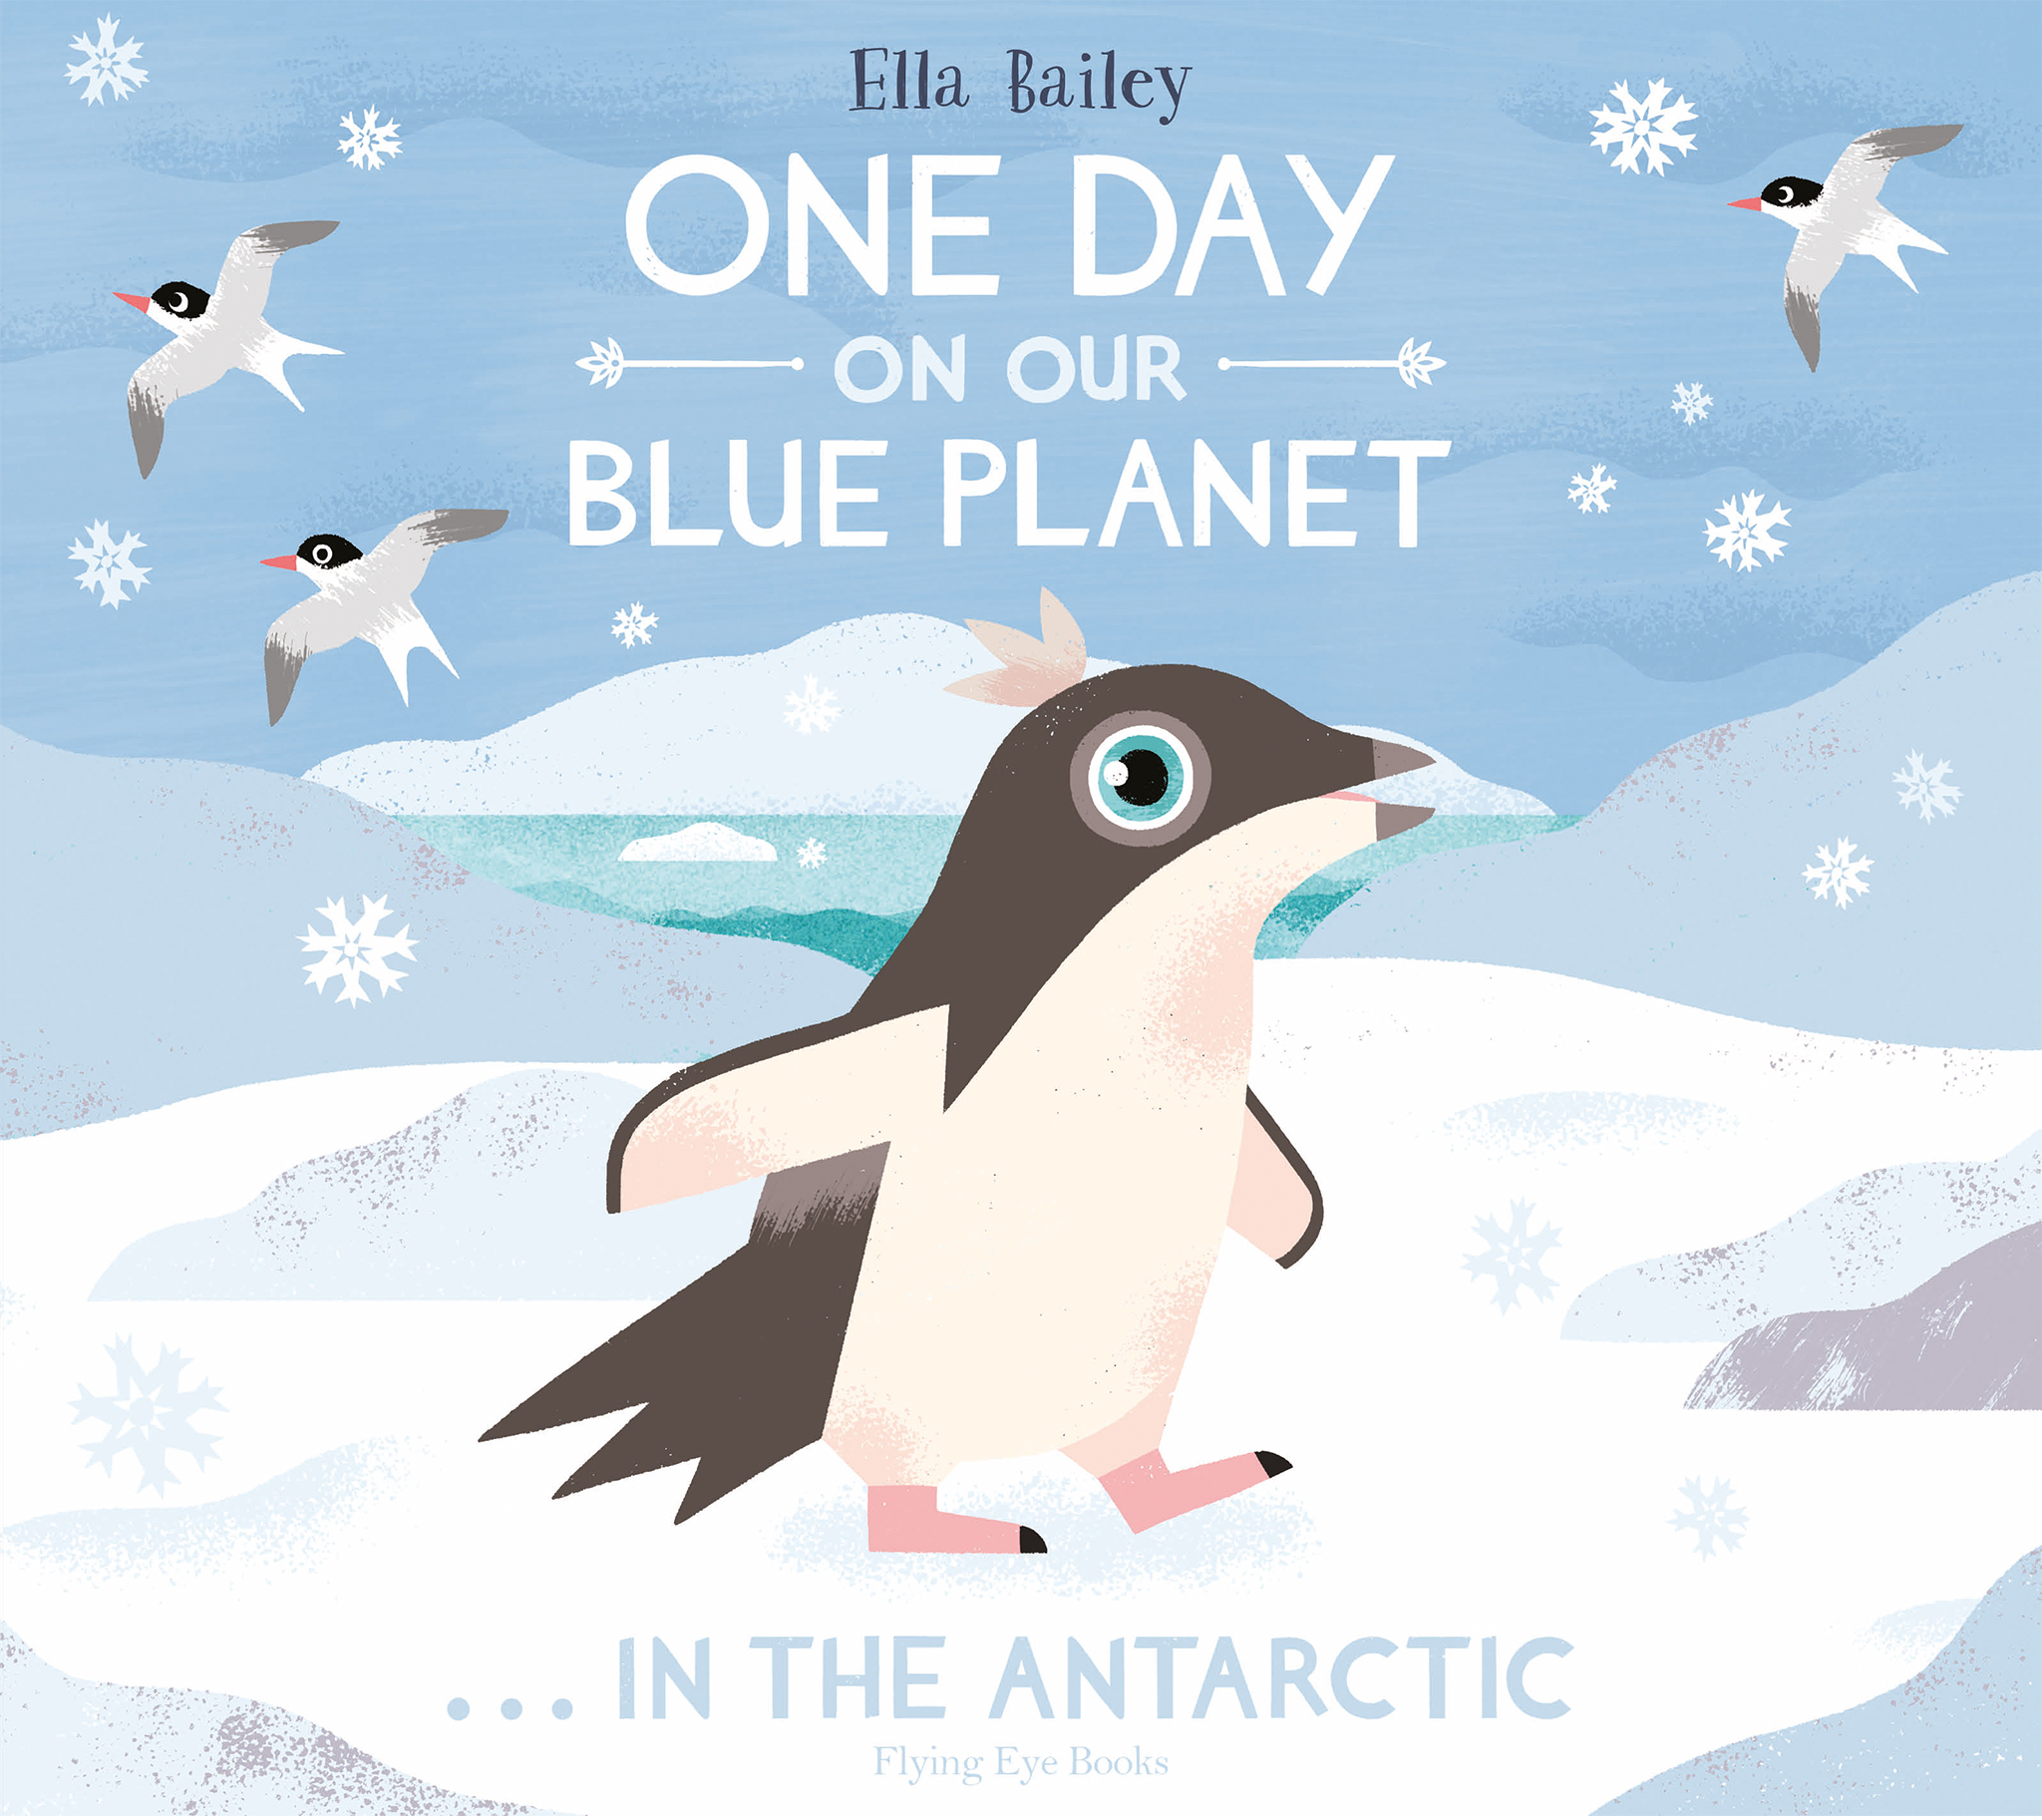 One Day on our Blue Planet: In the Antarctic